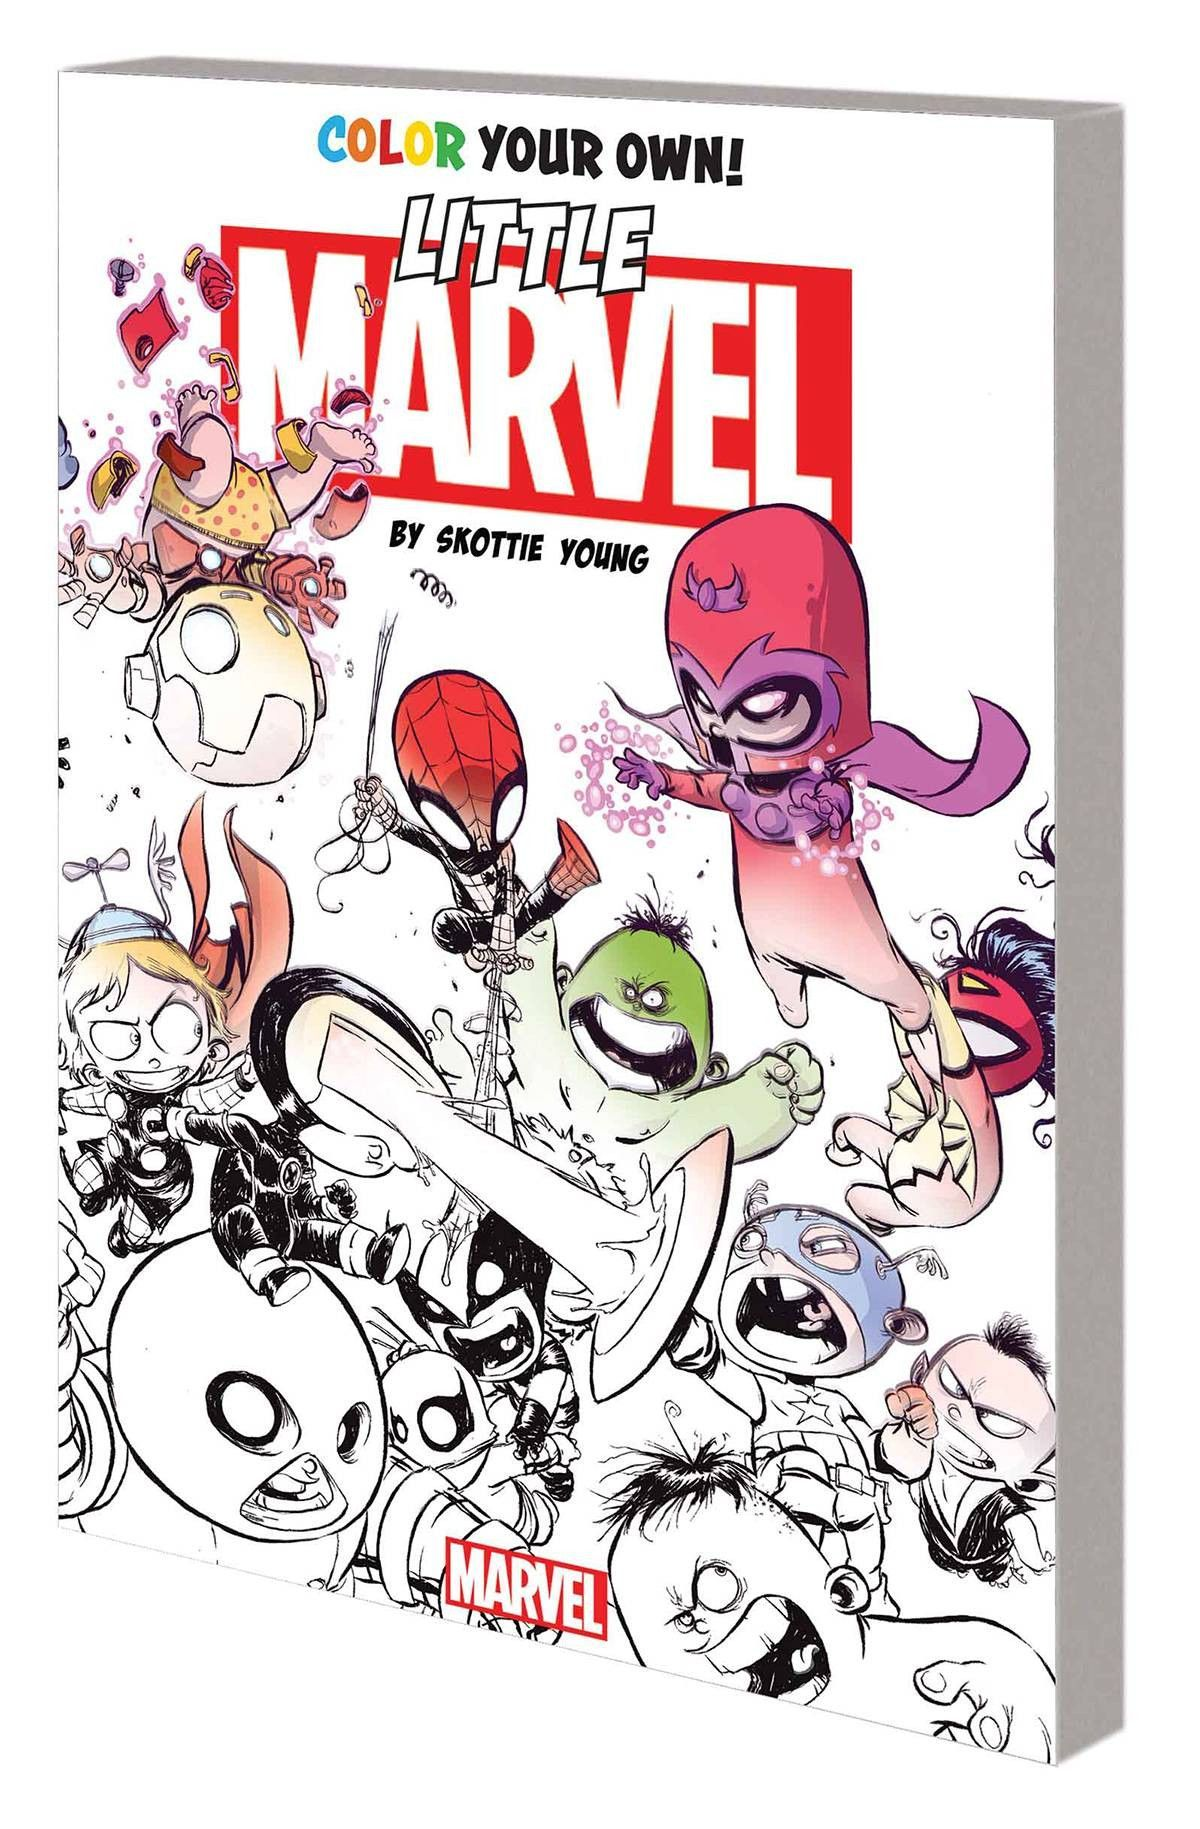 Color Your Own Little Marvel by Skottie Young Coloring Book TP